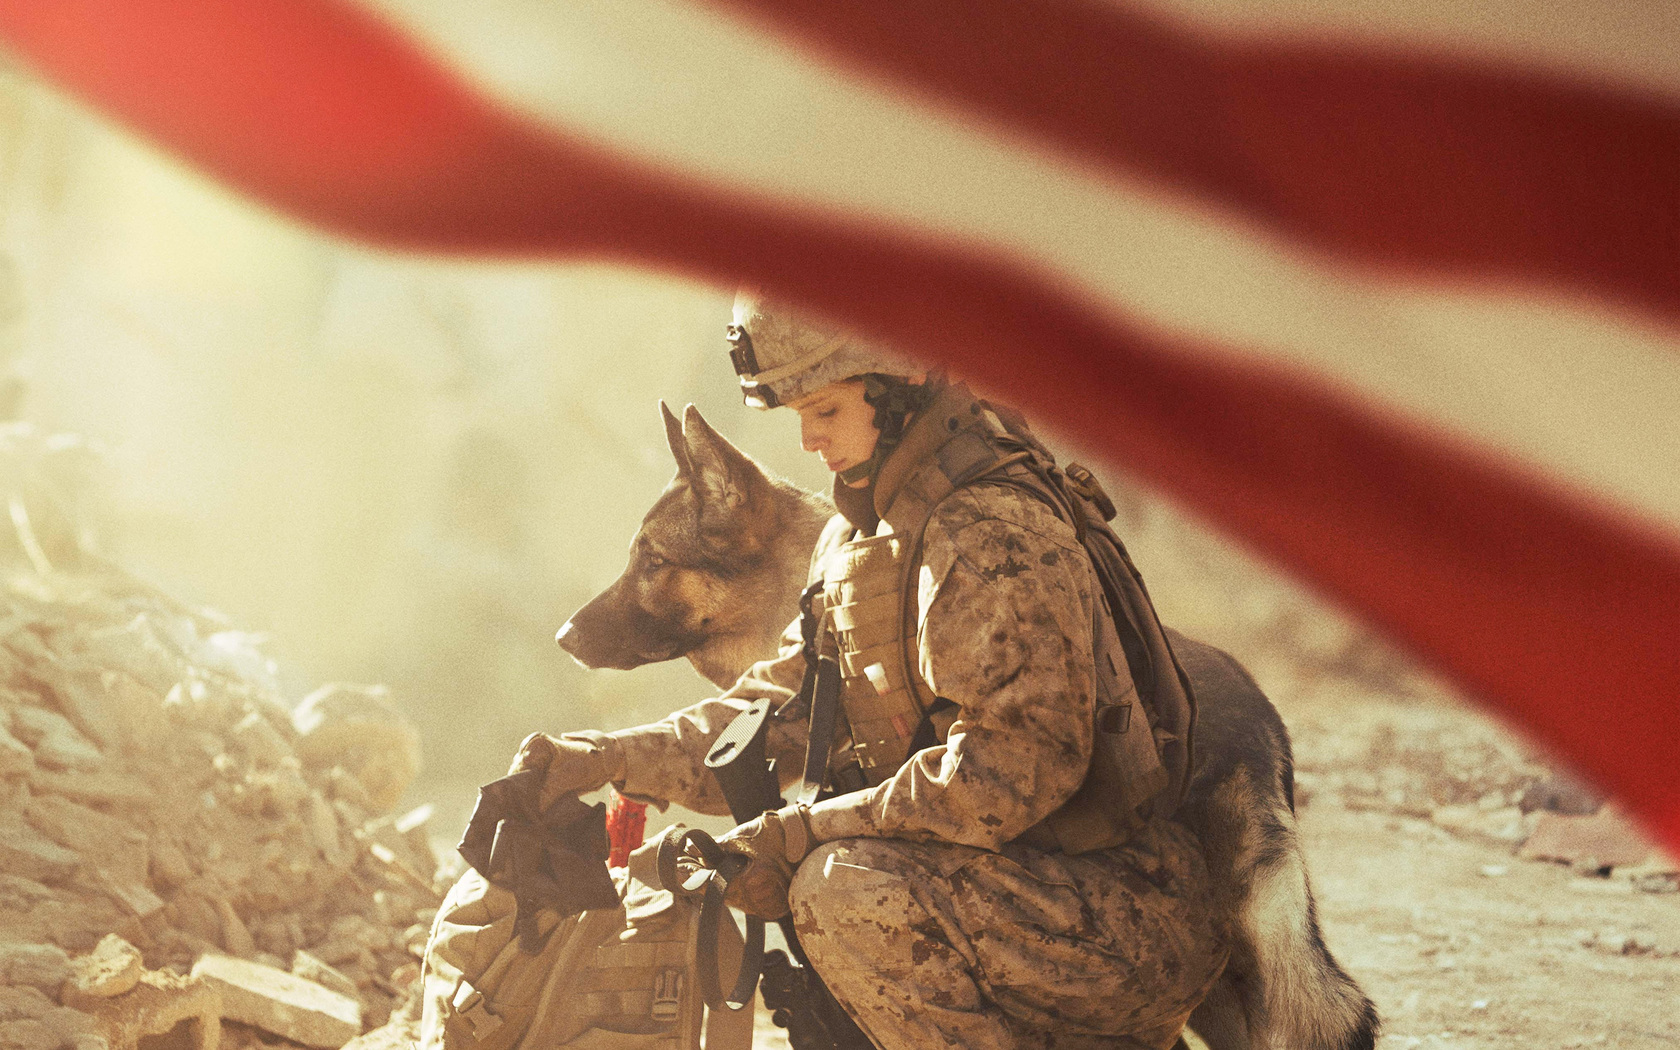 megan-leavey-2017-movie-4k-wide.jpg